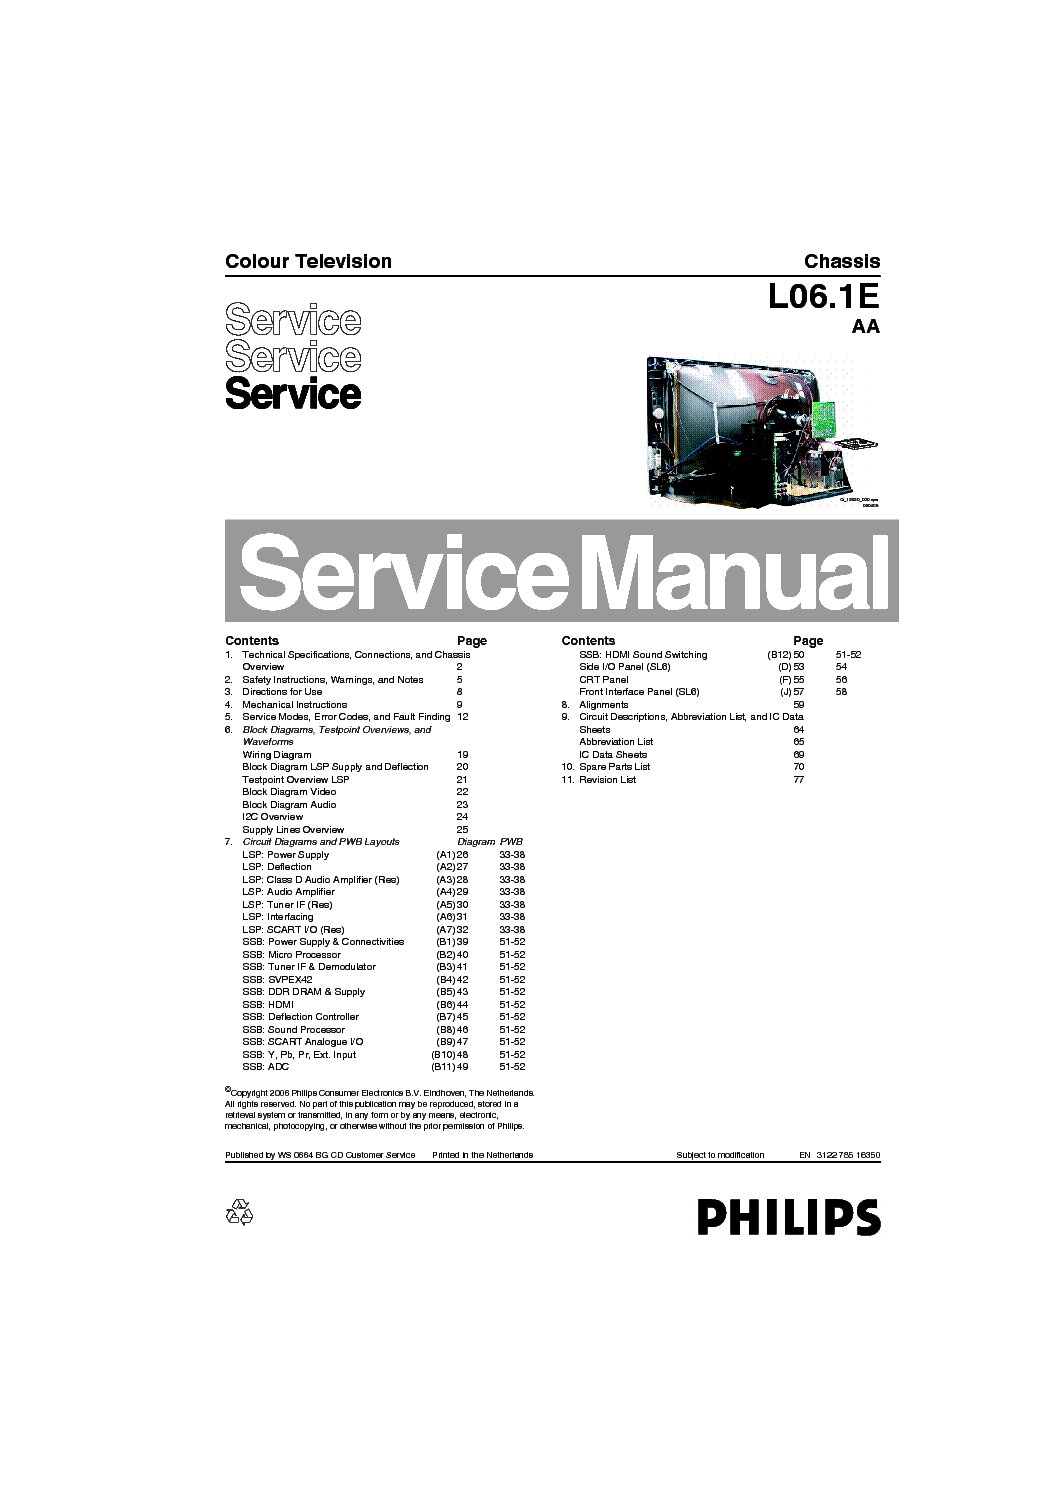 PHILIPS CHASSIS L06.1E 29PT9521-12 Service Manual download